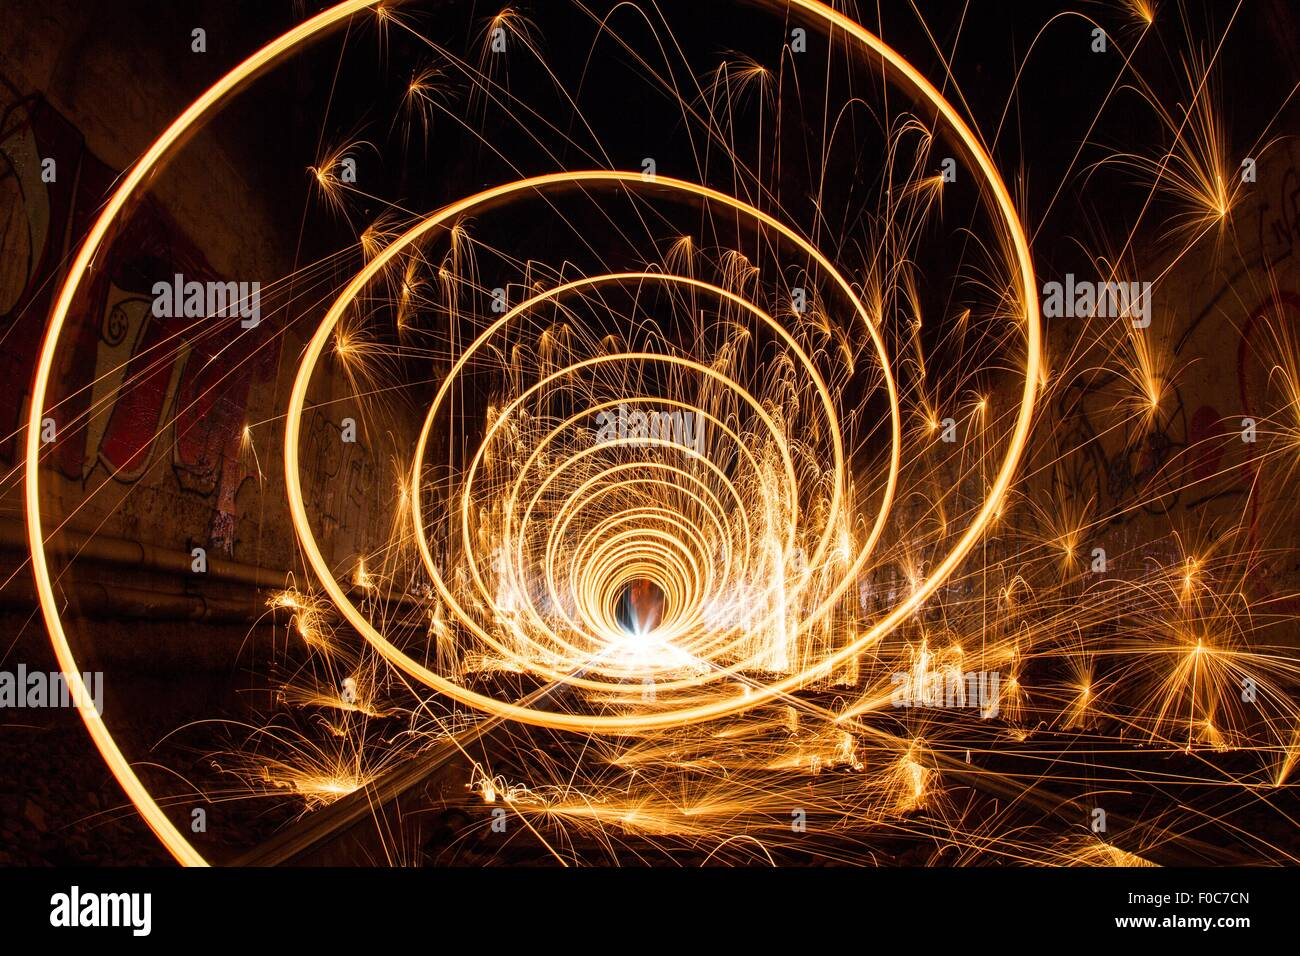 Train tunnel with light trails, low angle view - Stock Image